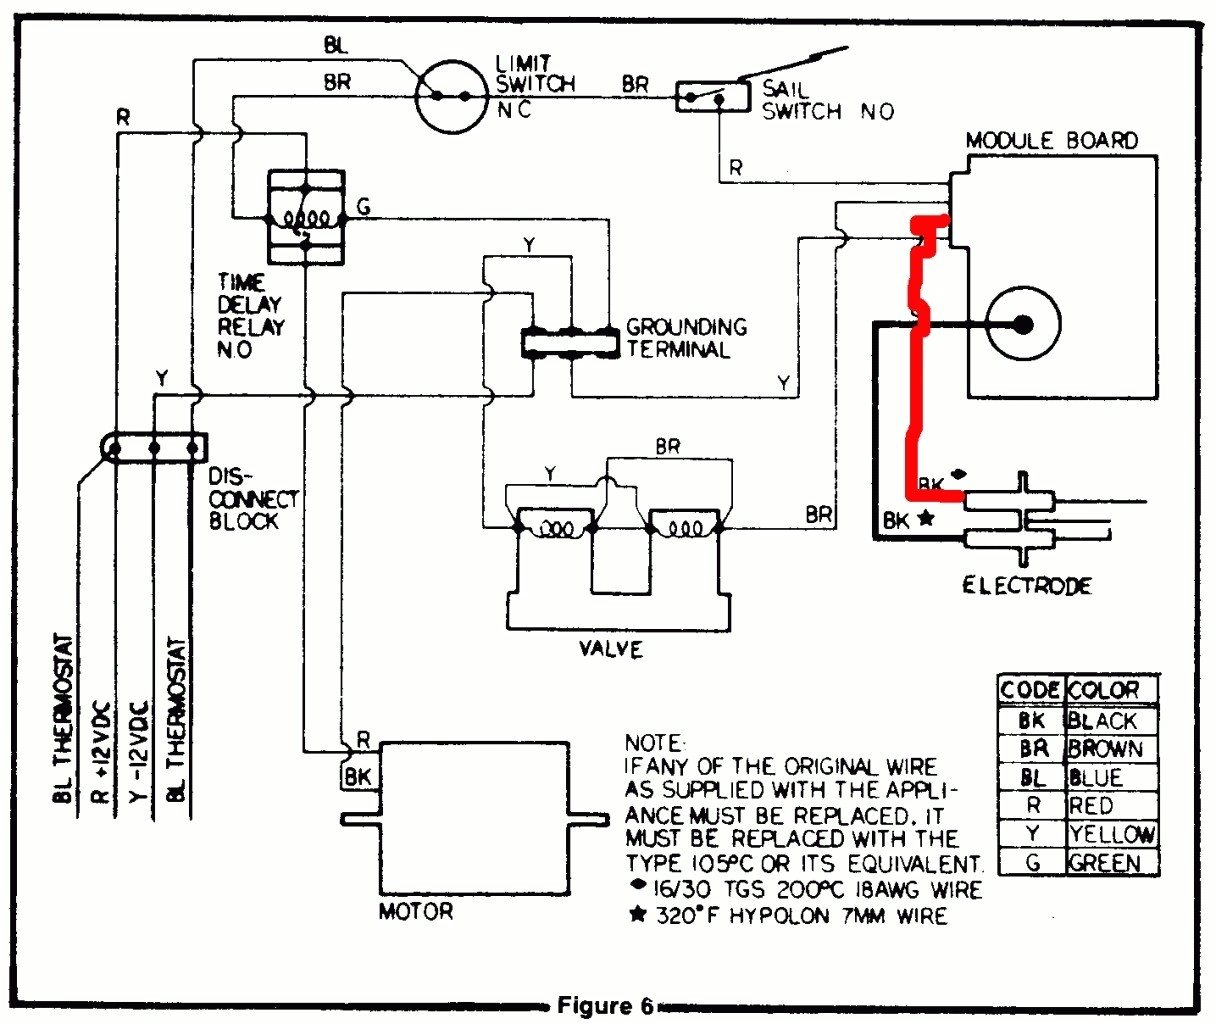 atwood water heater wiring diagram travel trailer furnace fresh bestatwood water heater wiring diagram travel trailer